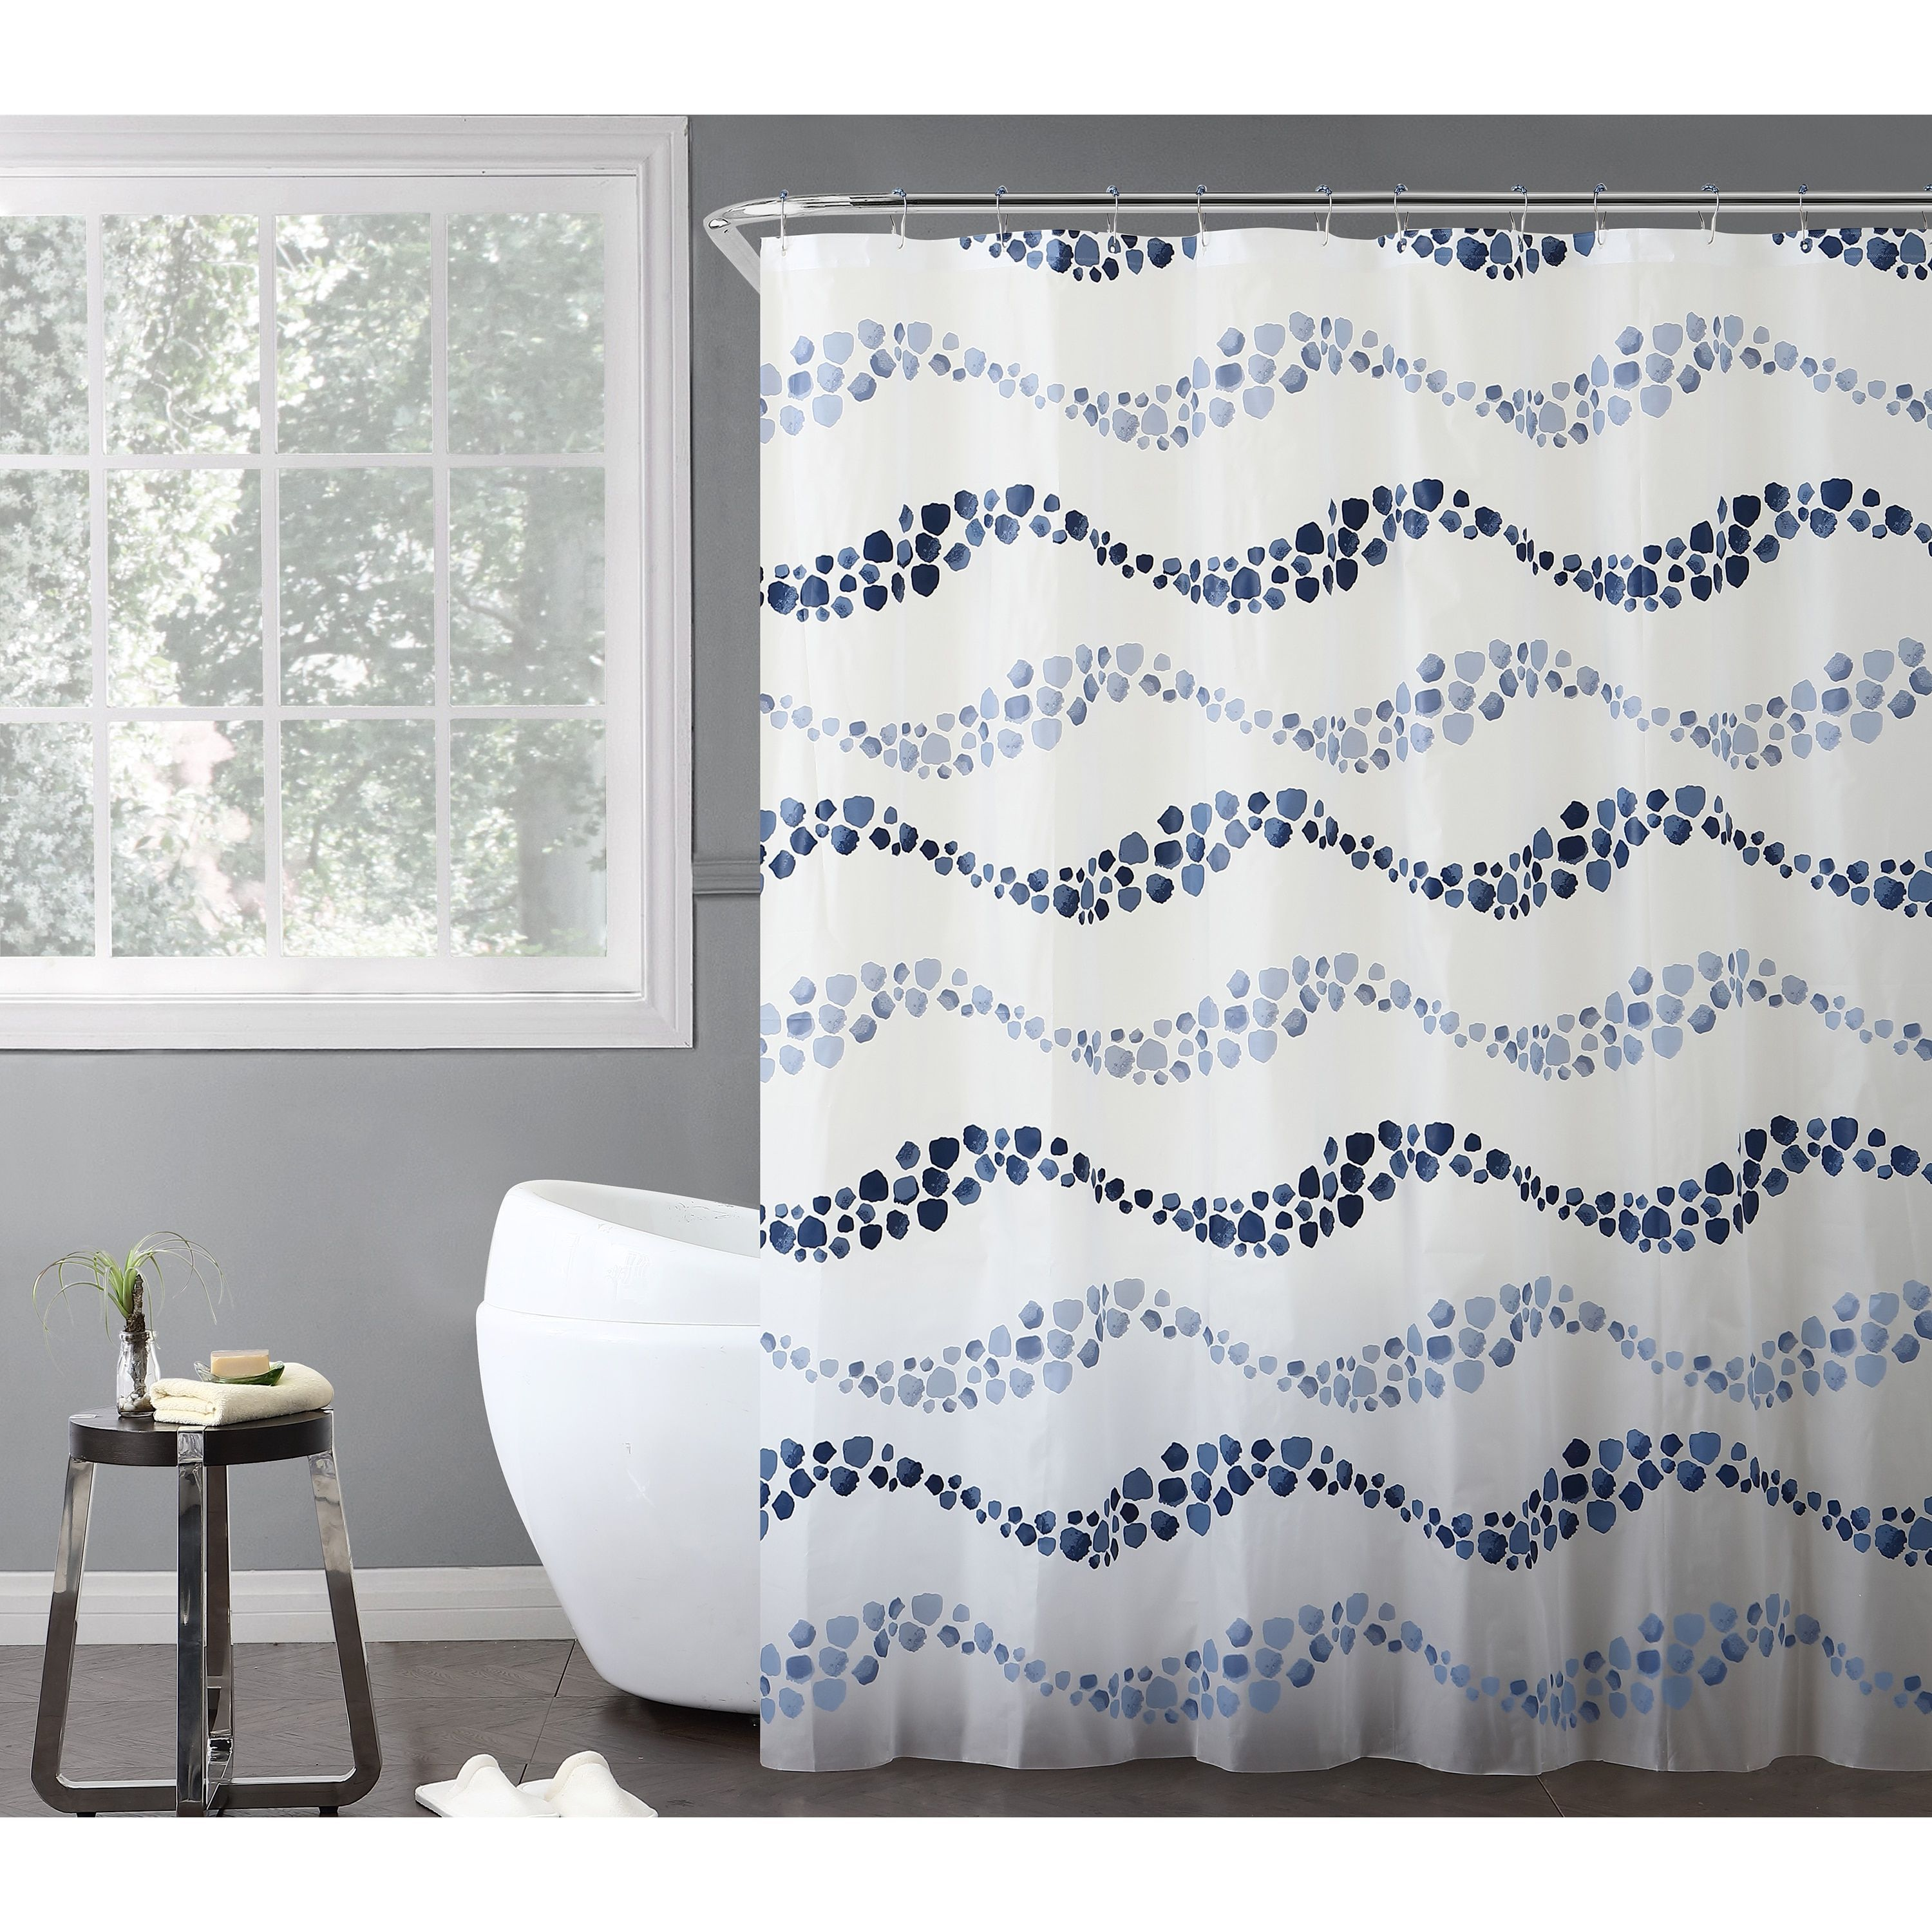 Vcny home dot wave shower curtain piece bath set products